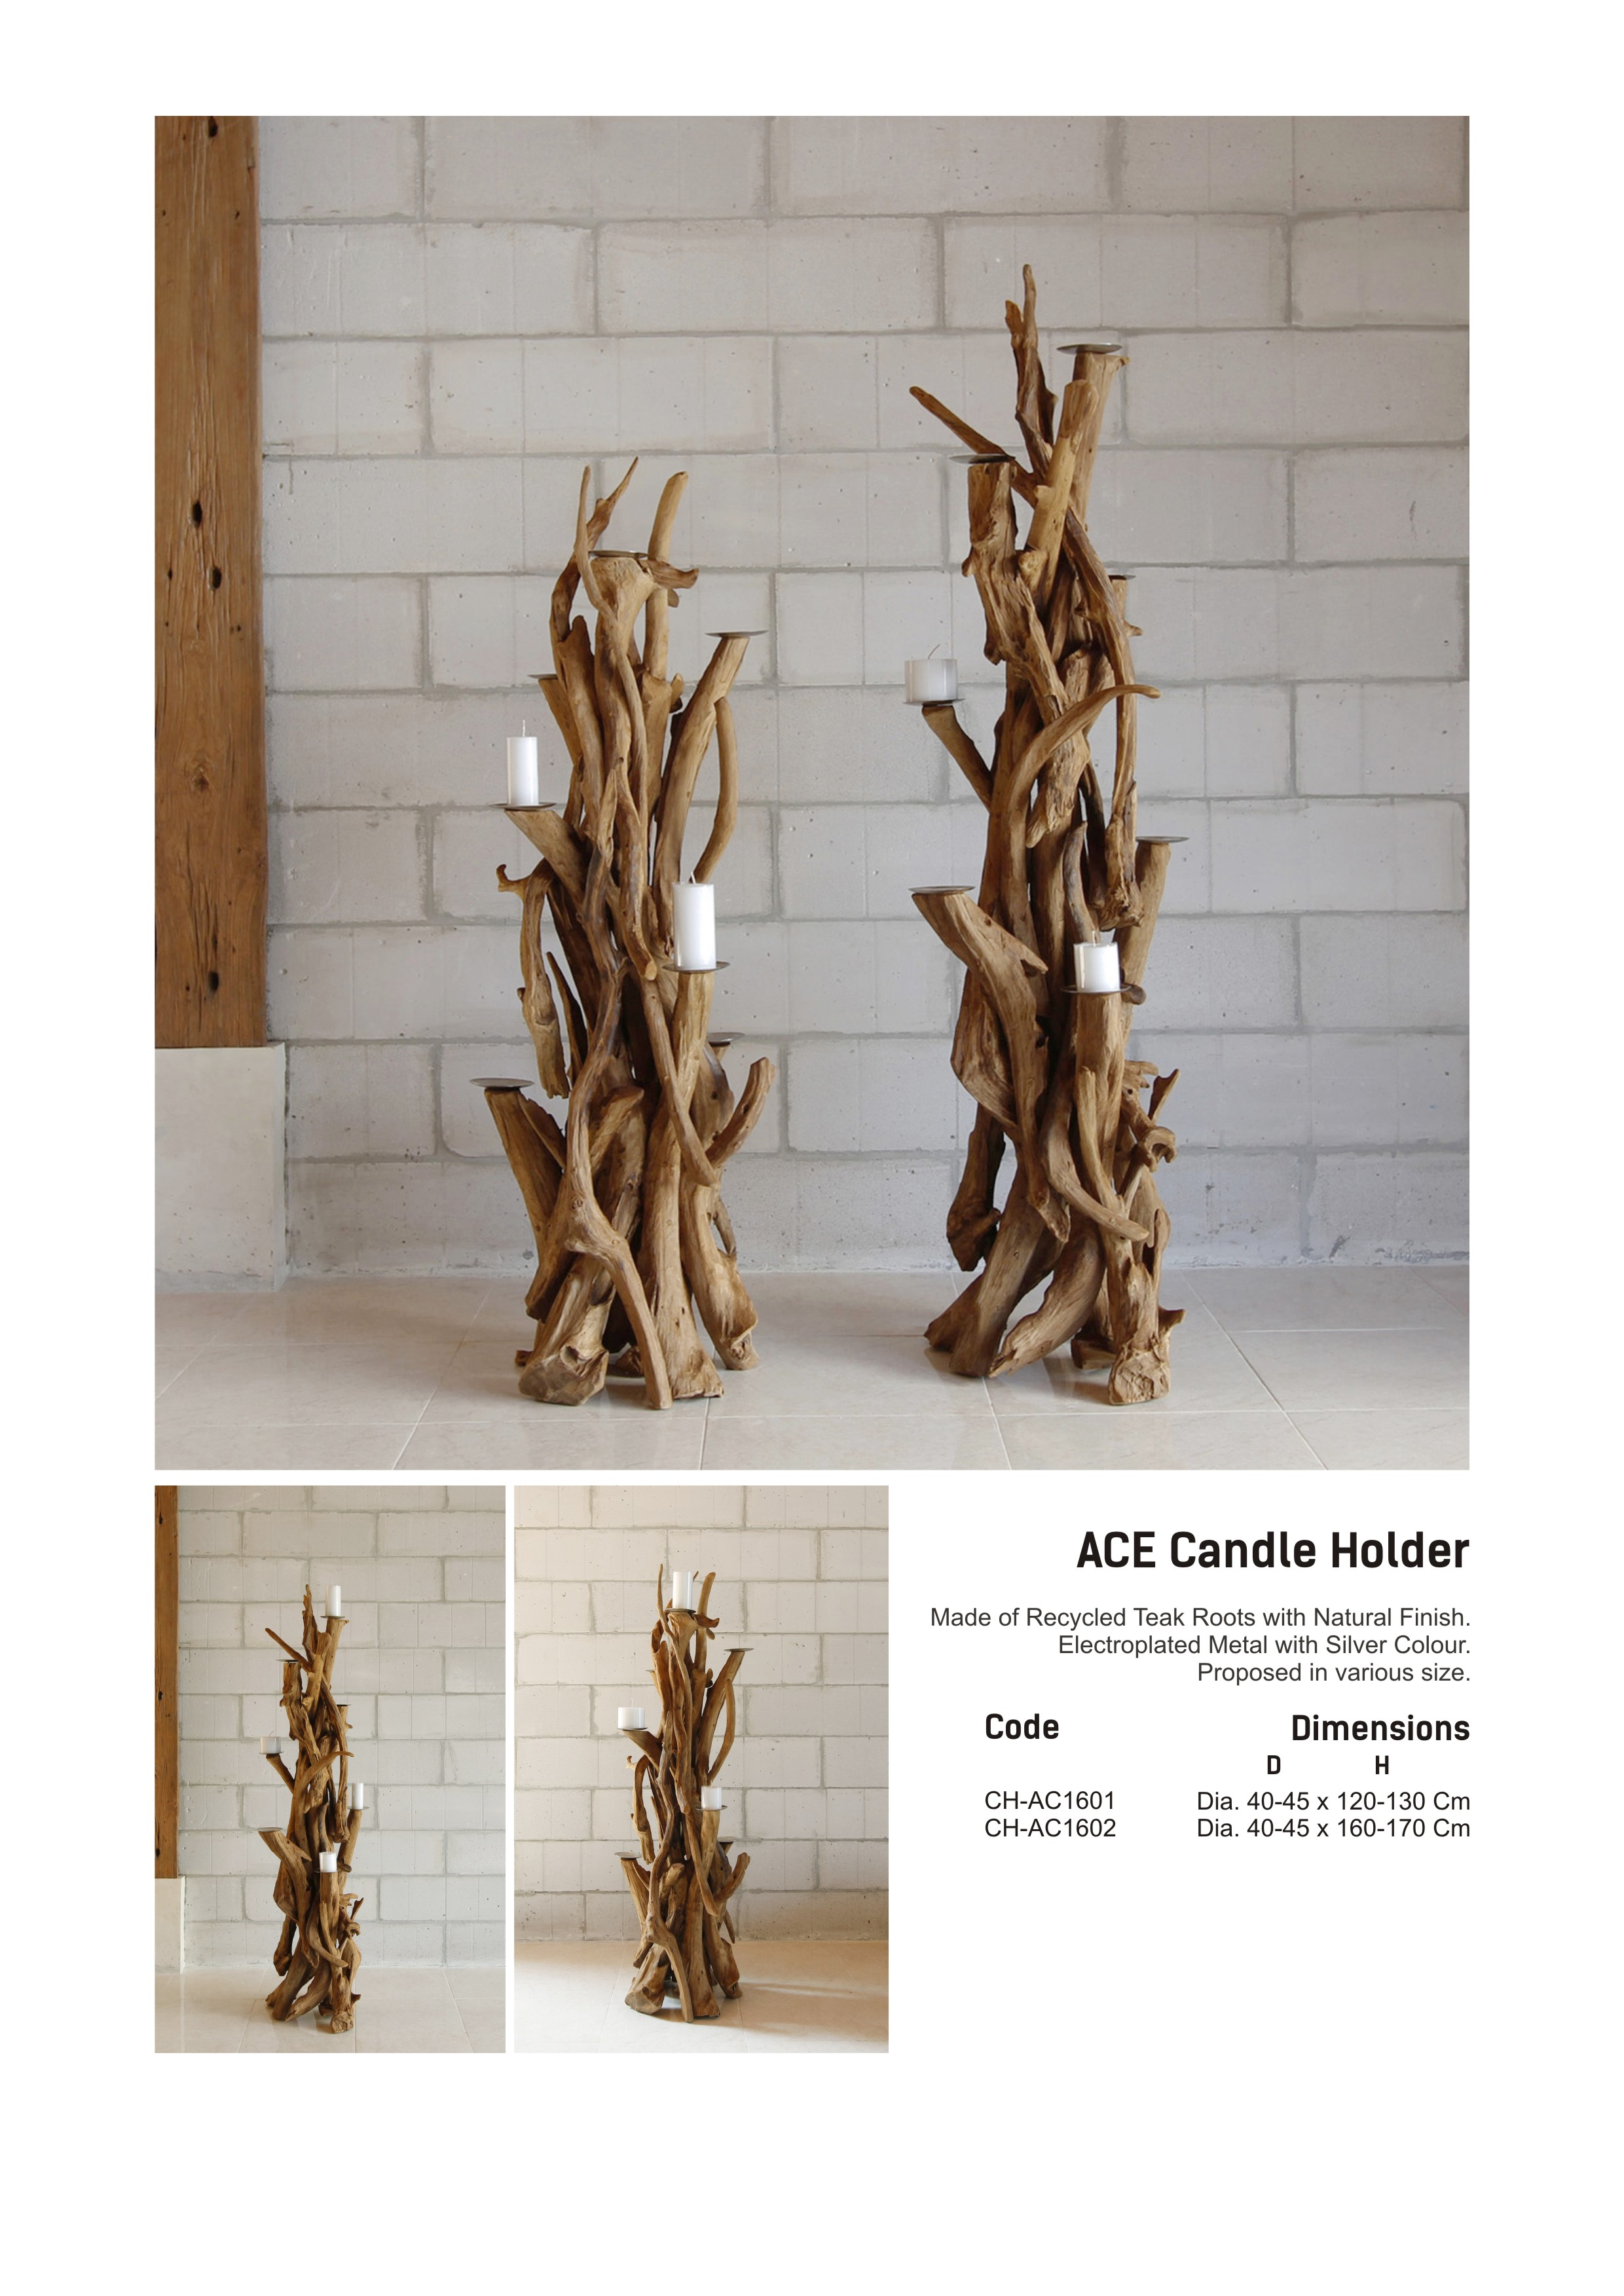 16. ACE Candle Holder